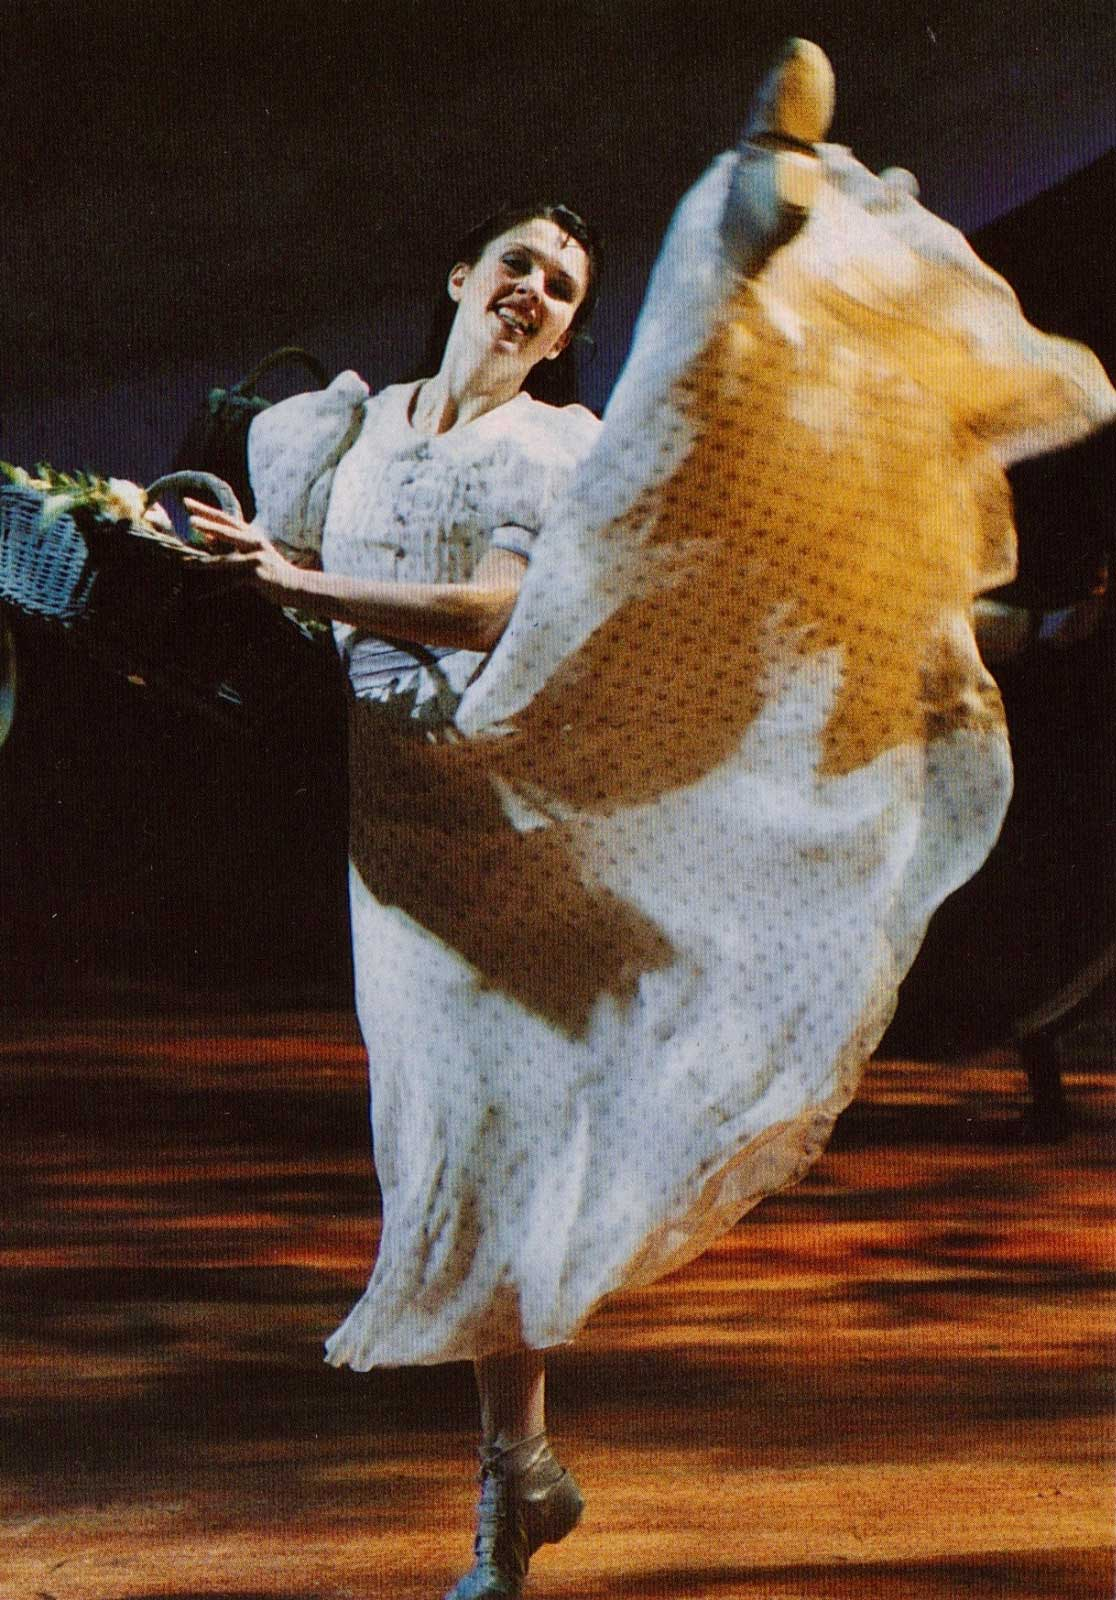 Laurey Willians (Josefina Gabrielle) in a white polkadot dress, dancing with her leg up while holding a basket of goods.